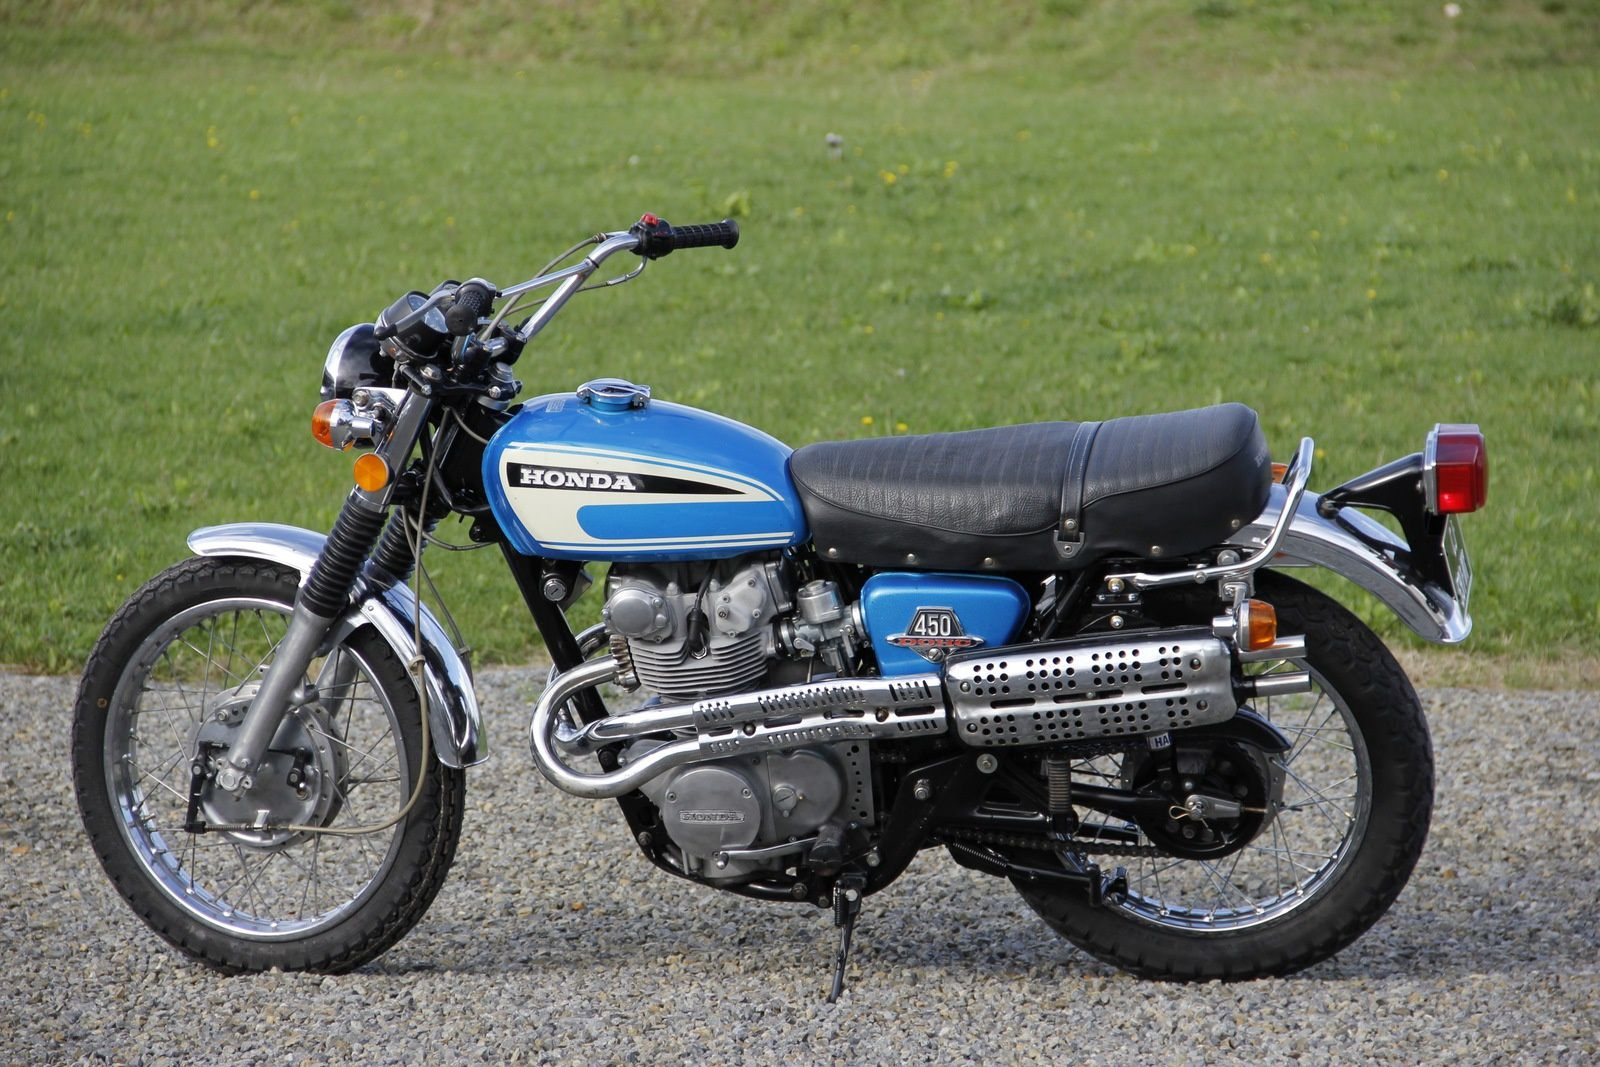 restauration honda cl 450 de 1974 breizh moto ancienne. Black Bedroom Furniture Sets. Home Design Ideas